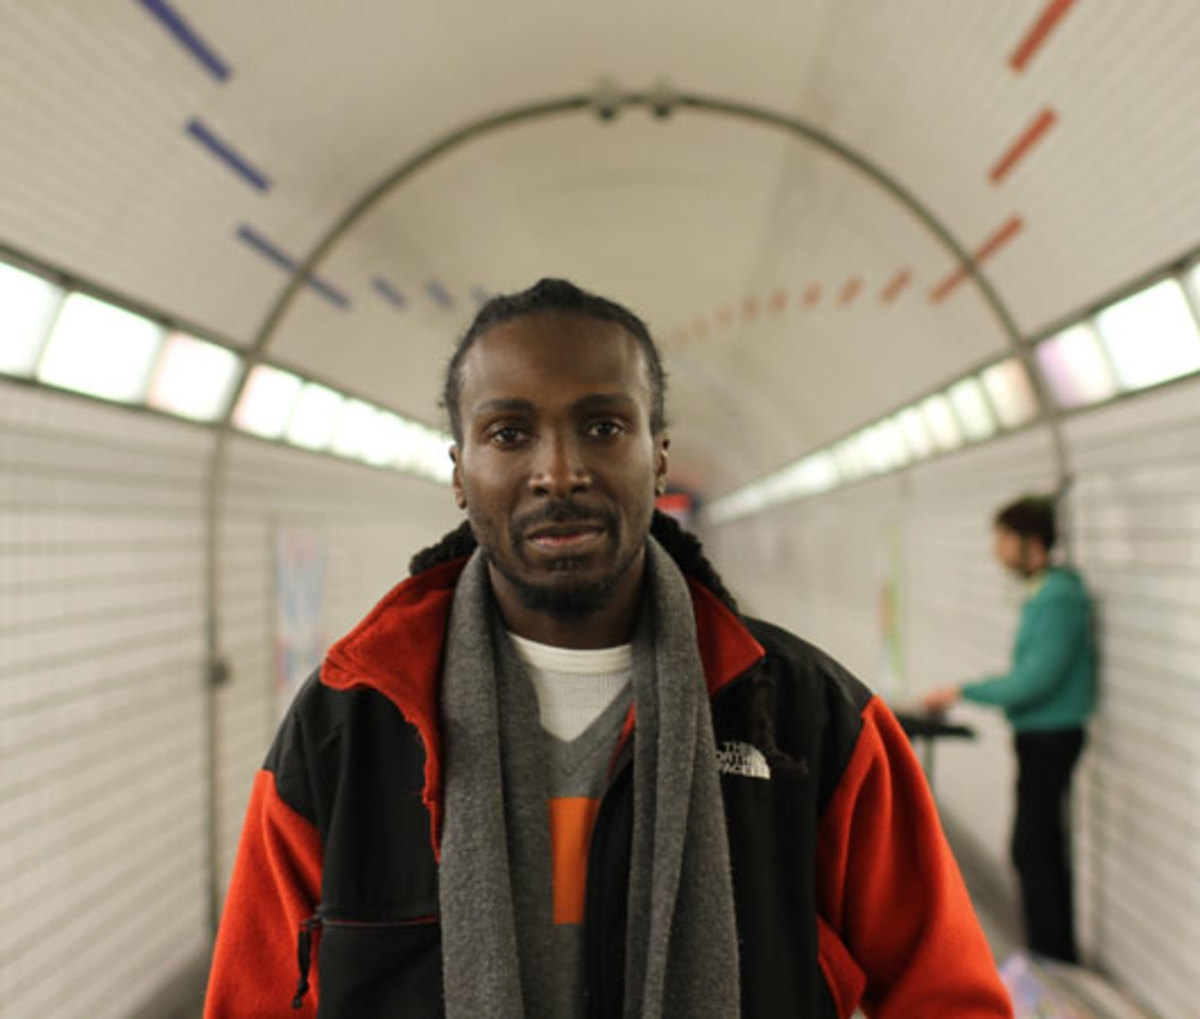 Footwork legend RP Boo announces new album 'I'll Tell You What!'